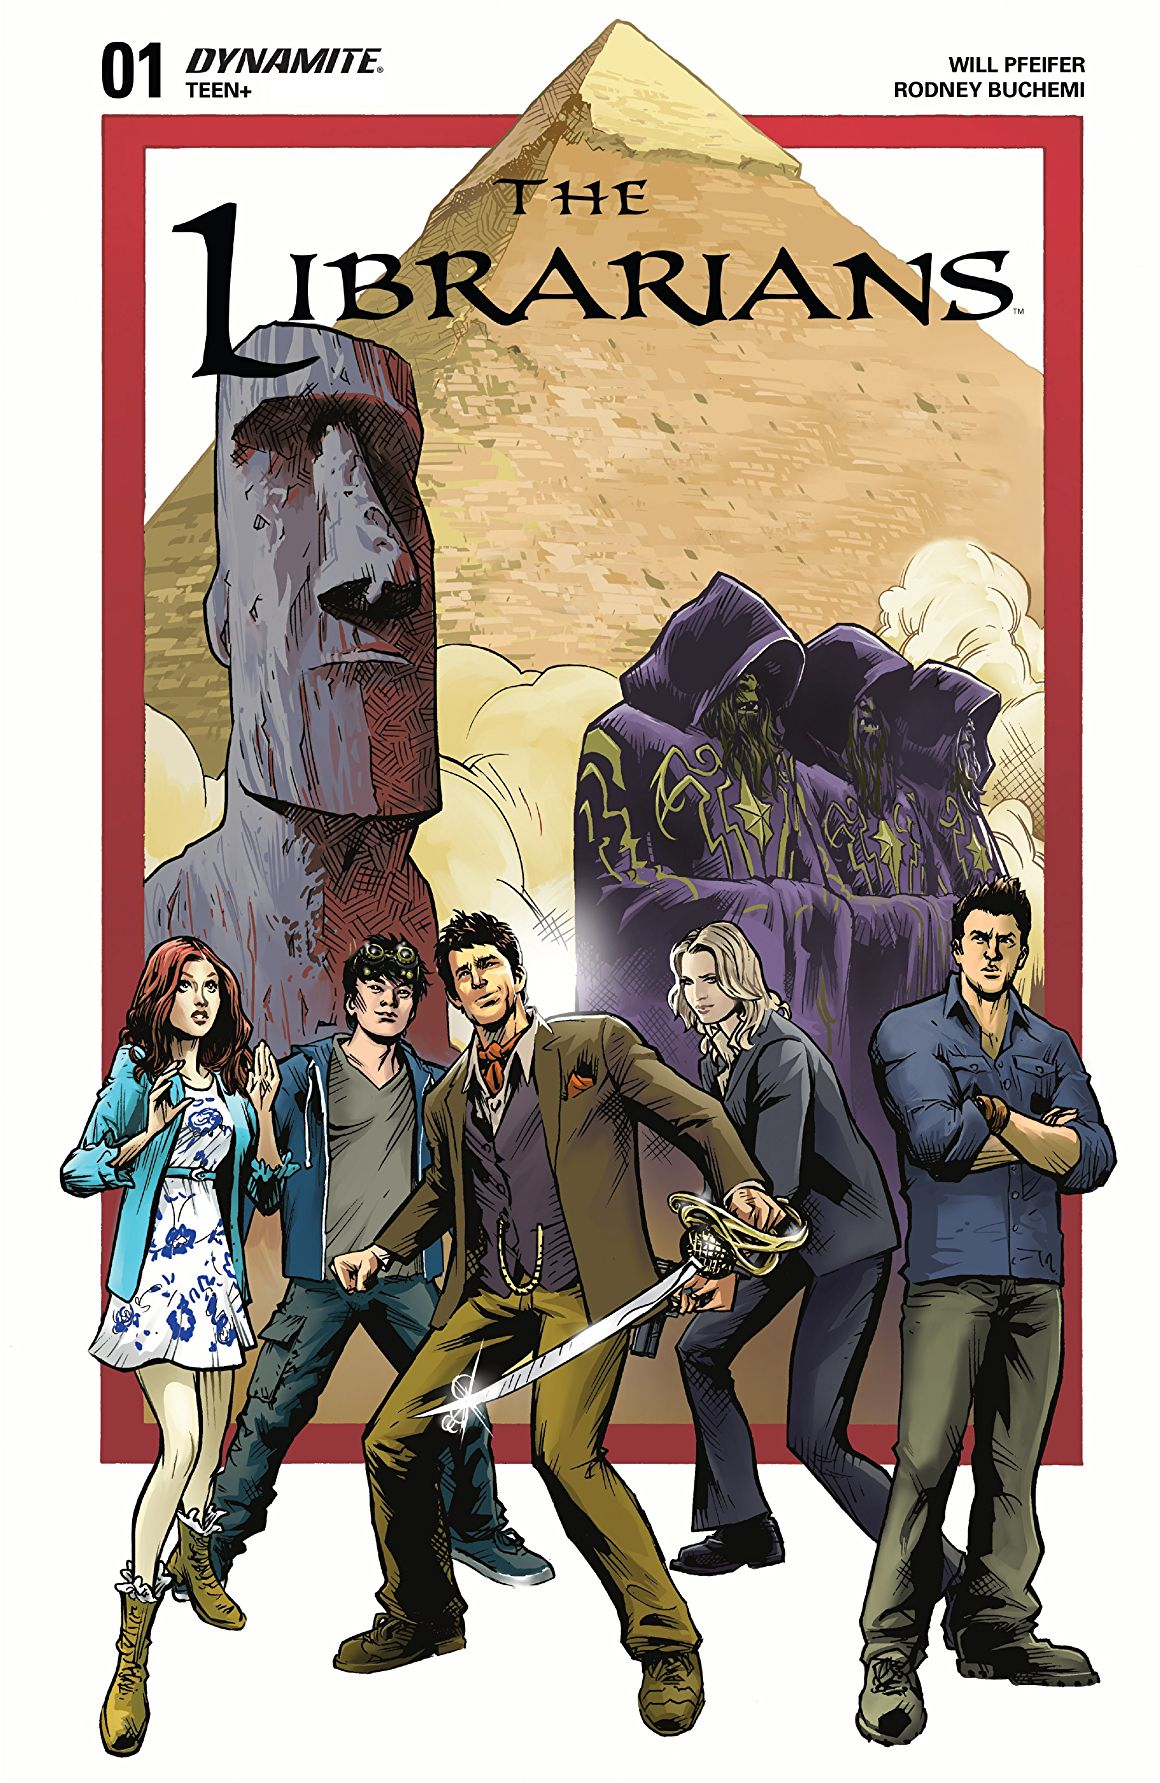 The Librarians #1 Review